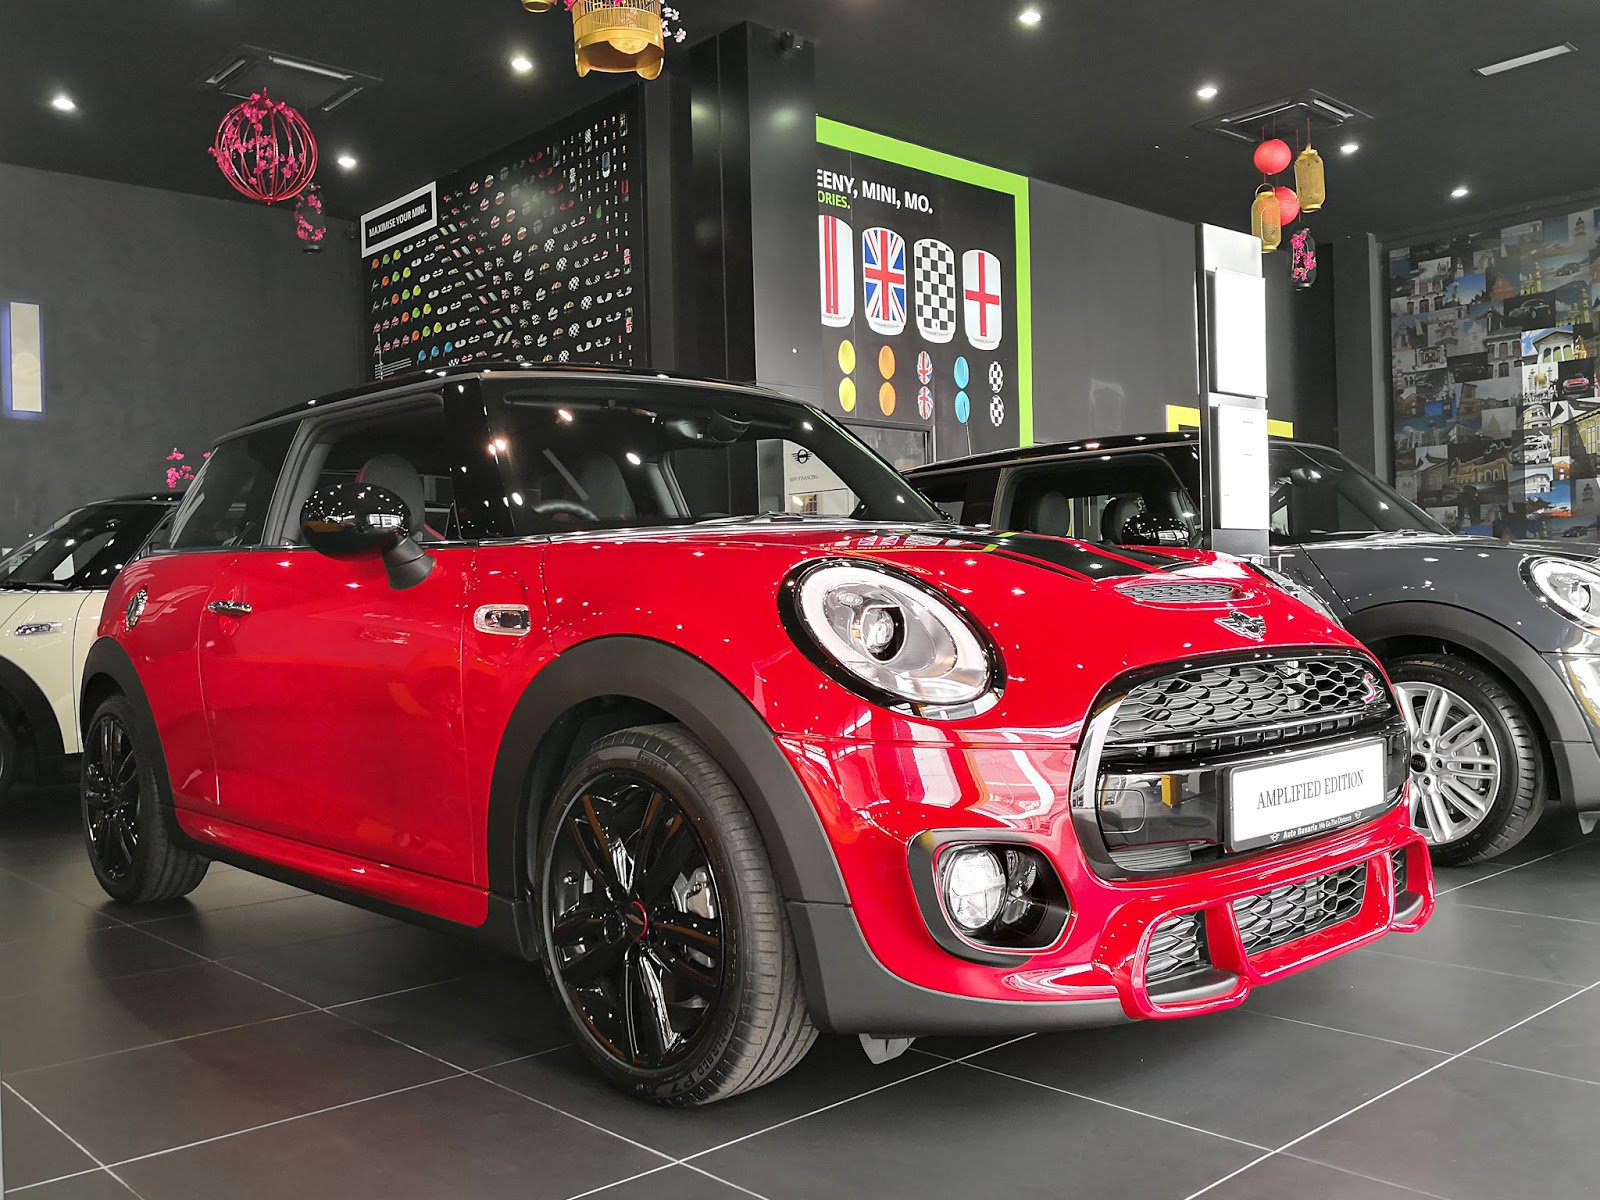 Here S The Chili Red Mini Cooper Amplified Edition Looks More Cooler Than Normal